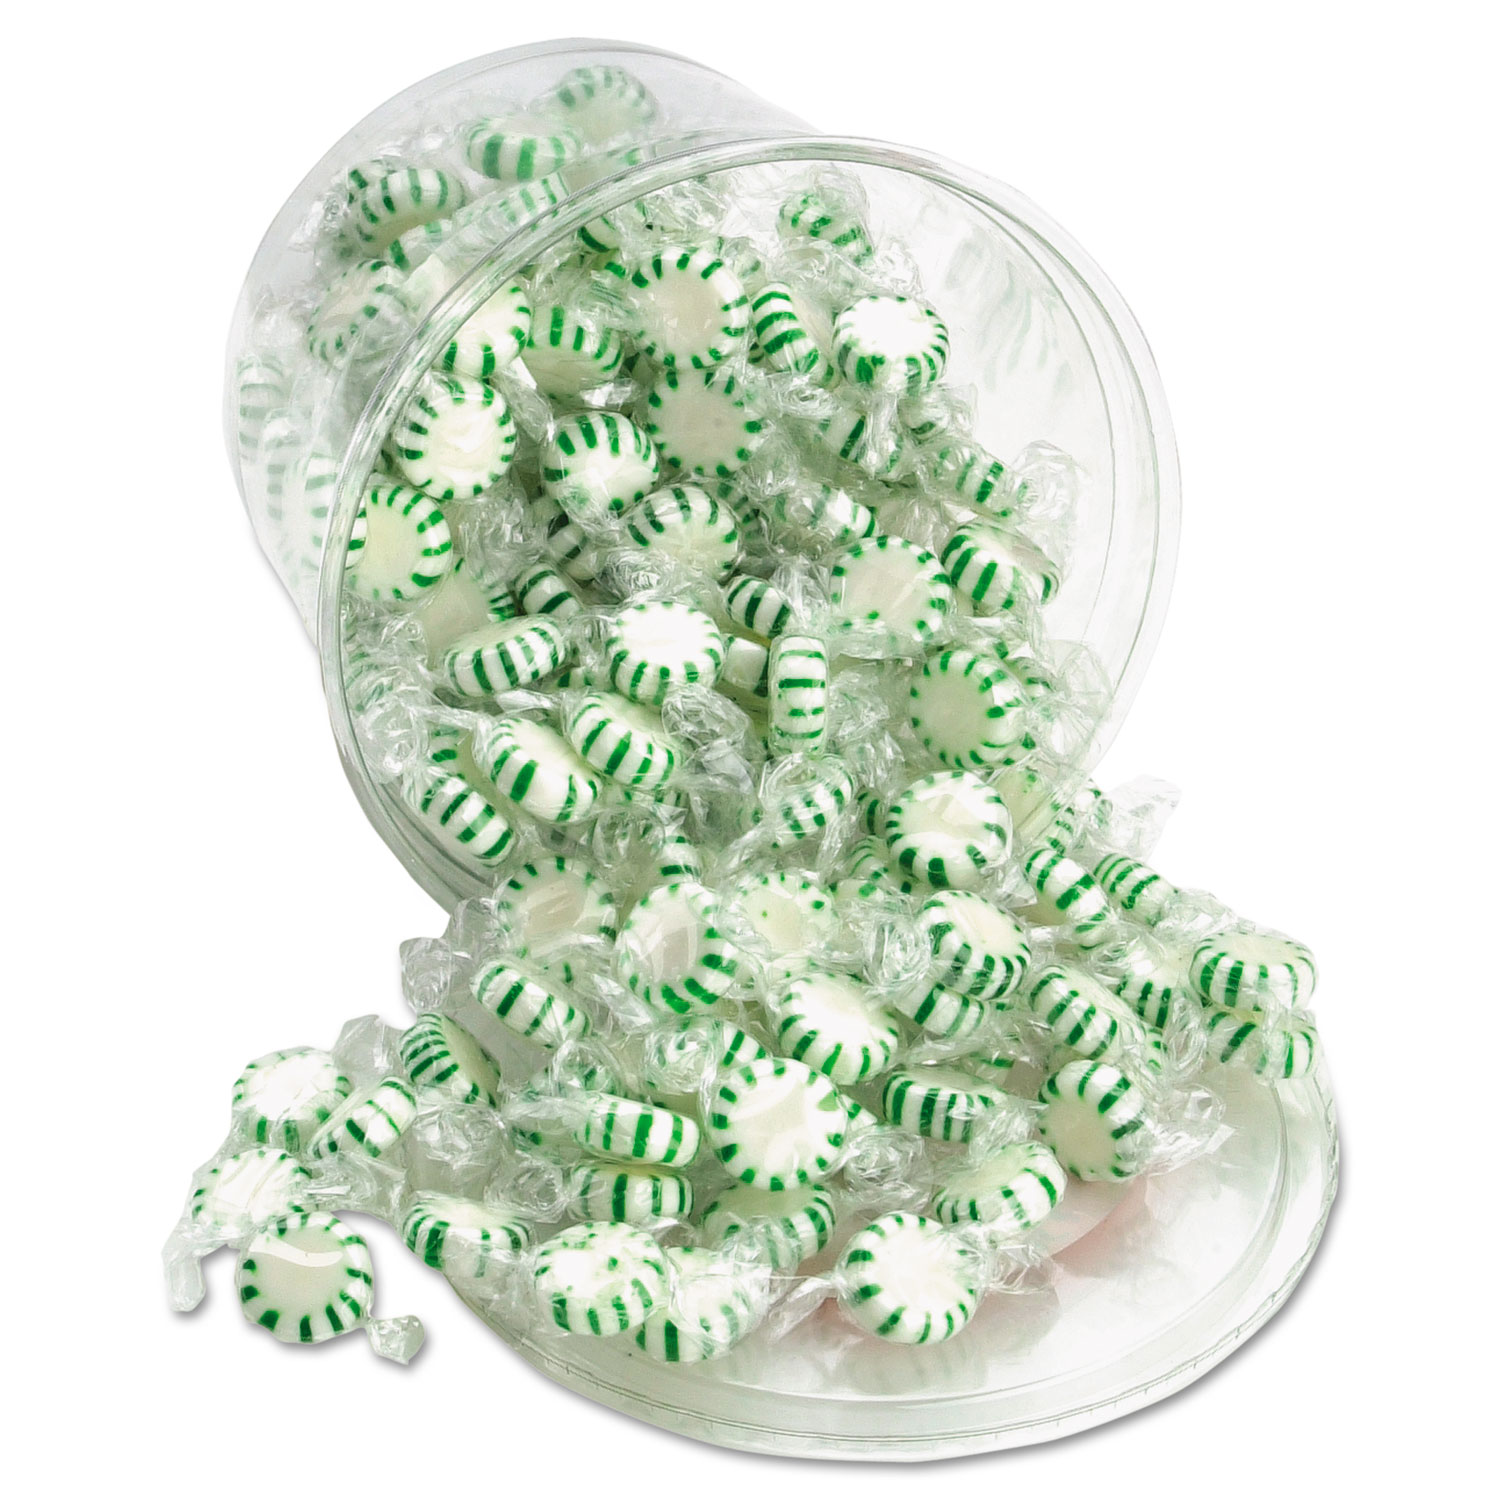 Starlight Mints, Spearmint Hard Candy, Individual Wrapped, 2 lb Resealable Tub